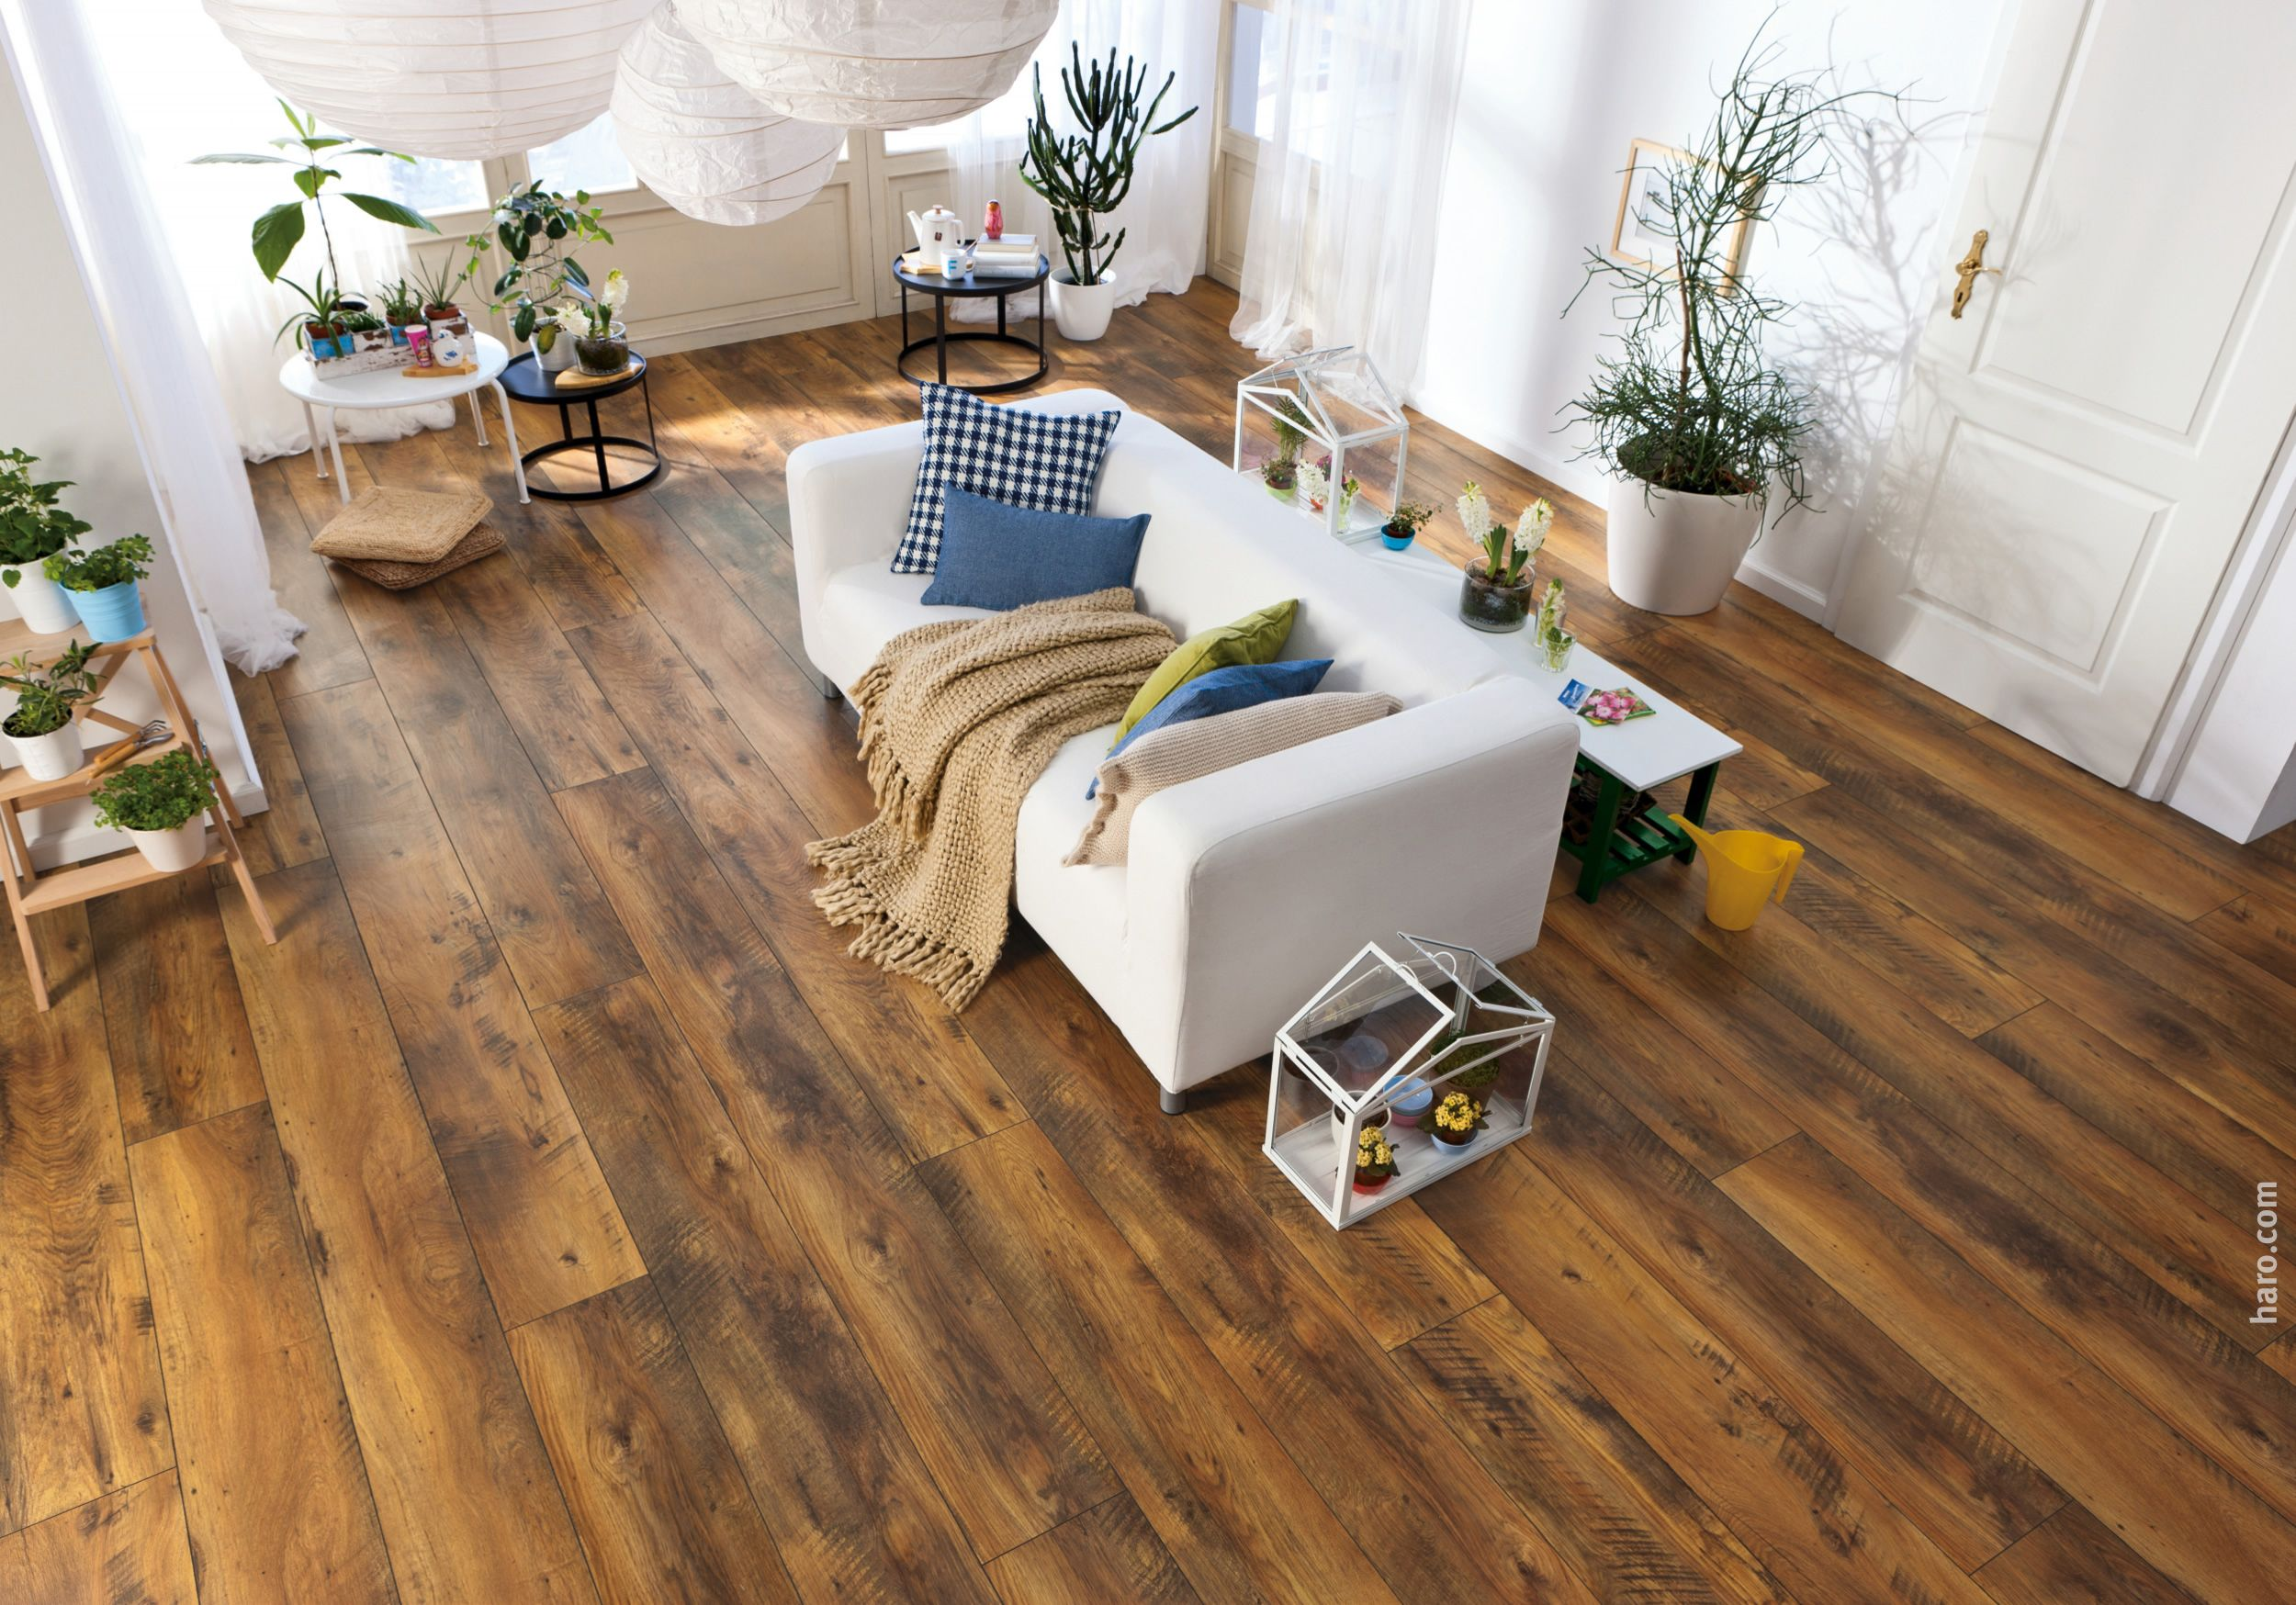 Best Of Wood Floor Pictures Of Rooms